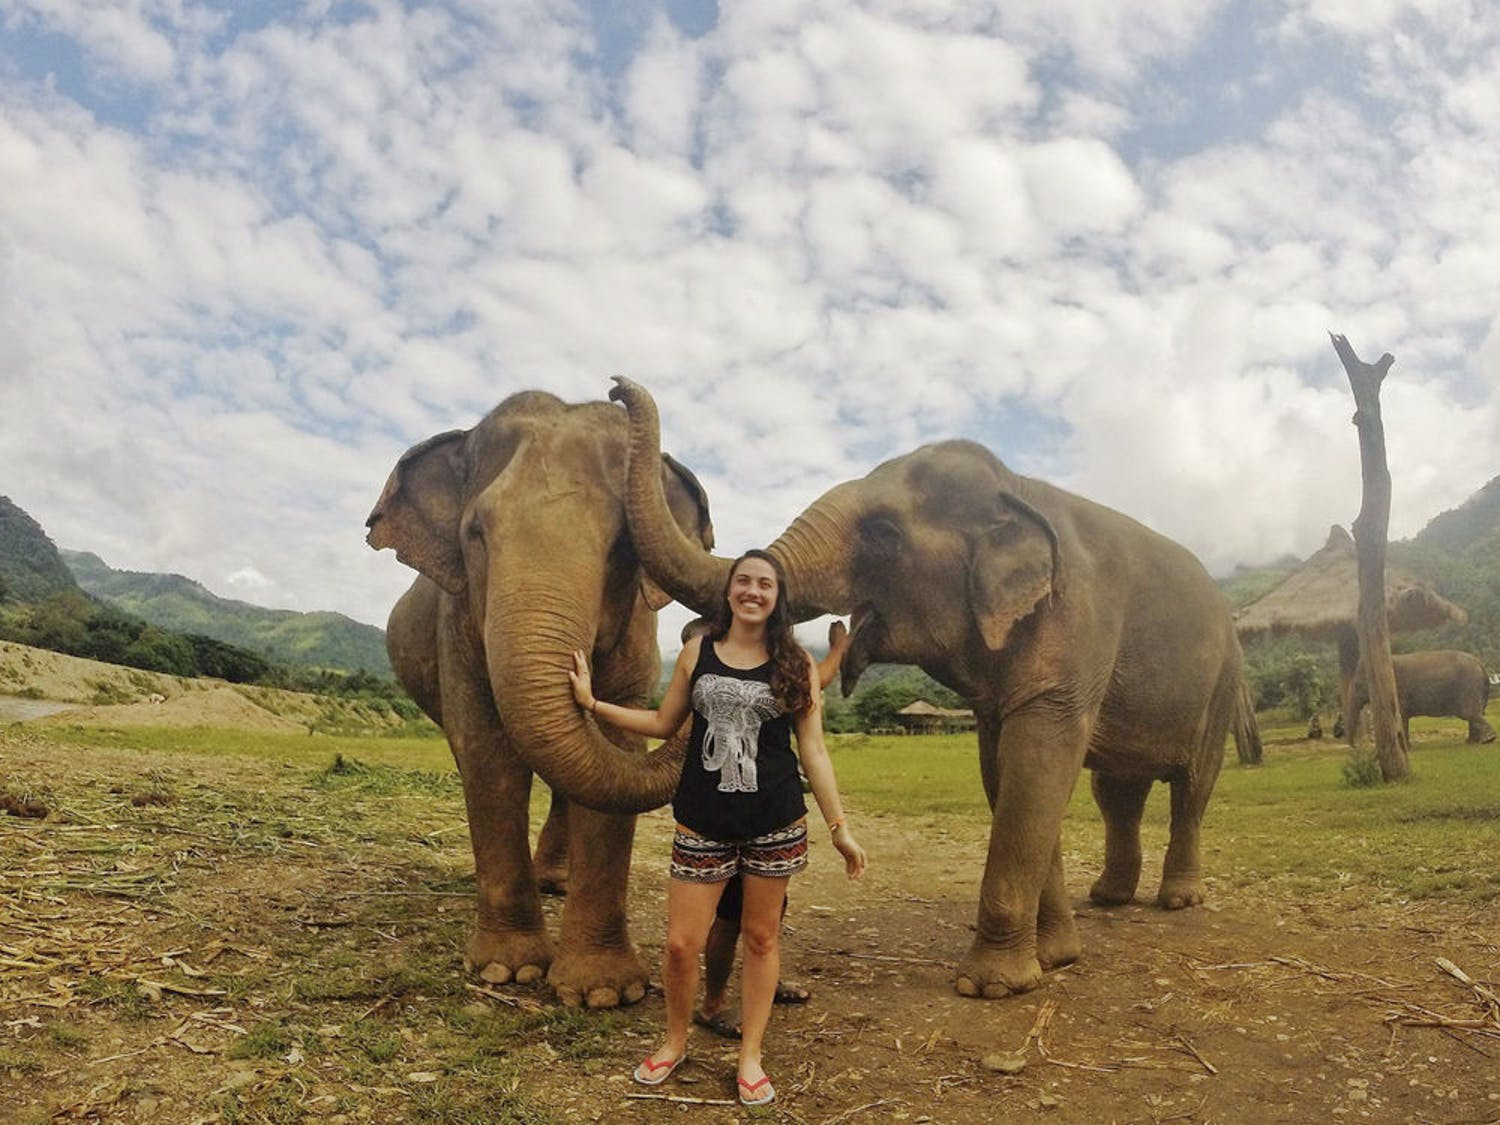 """Trisha Seppey, a 23-year-old Santa Fe veterinarian junior, poses with elephants at the Elephant Nature Park in northern Thailand during her study abroad trip. Seppey chose the program, """"Loop Abroad,"""" because it allowed her to help injured animals such as elephants and dogs."""